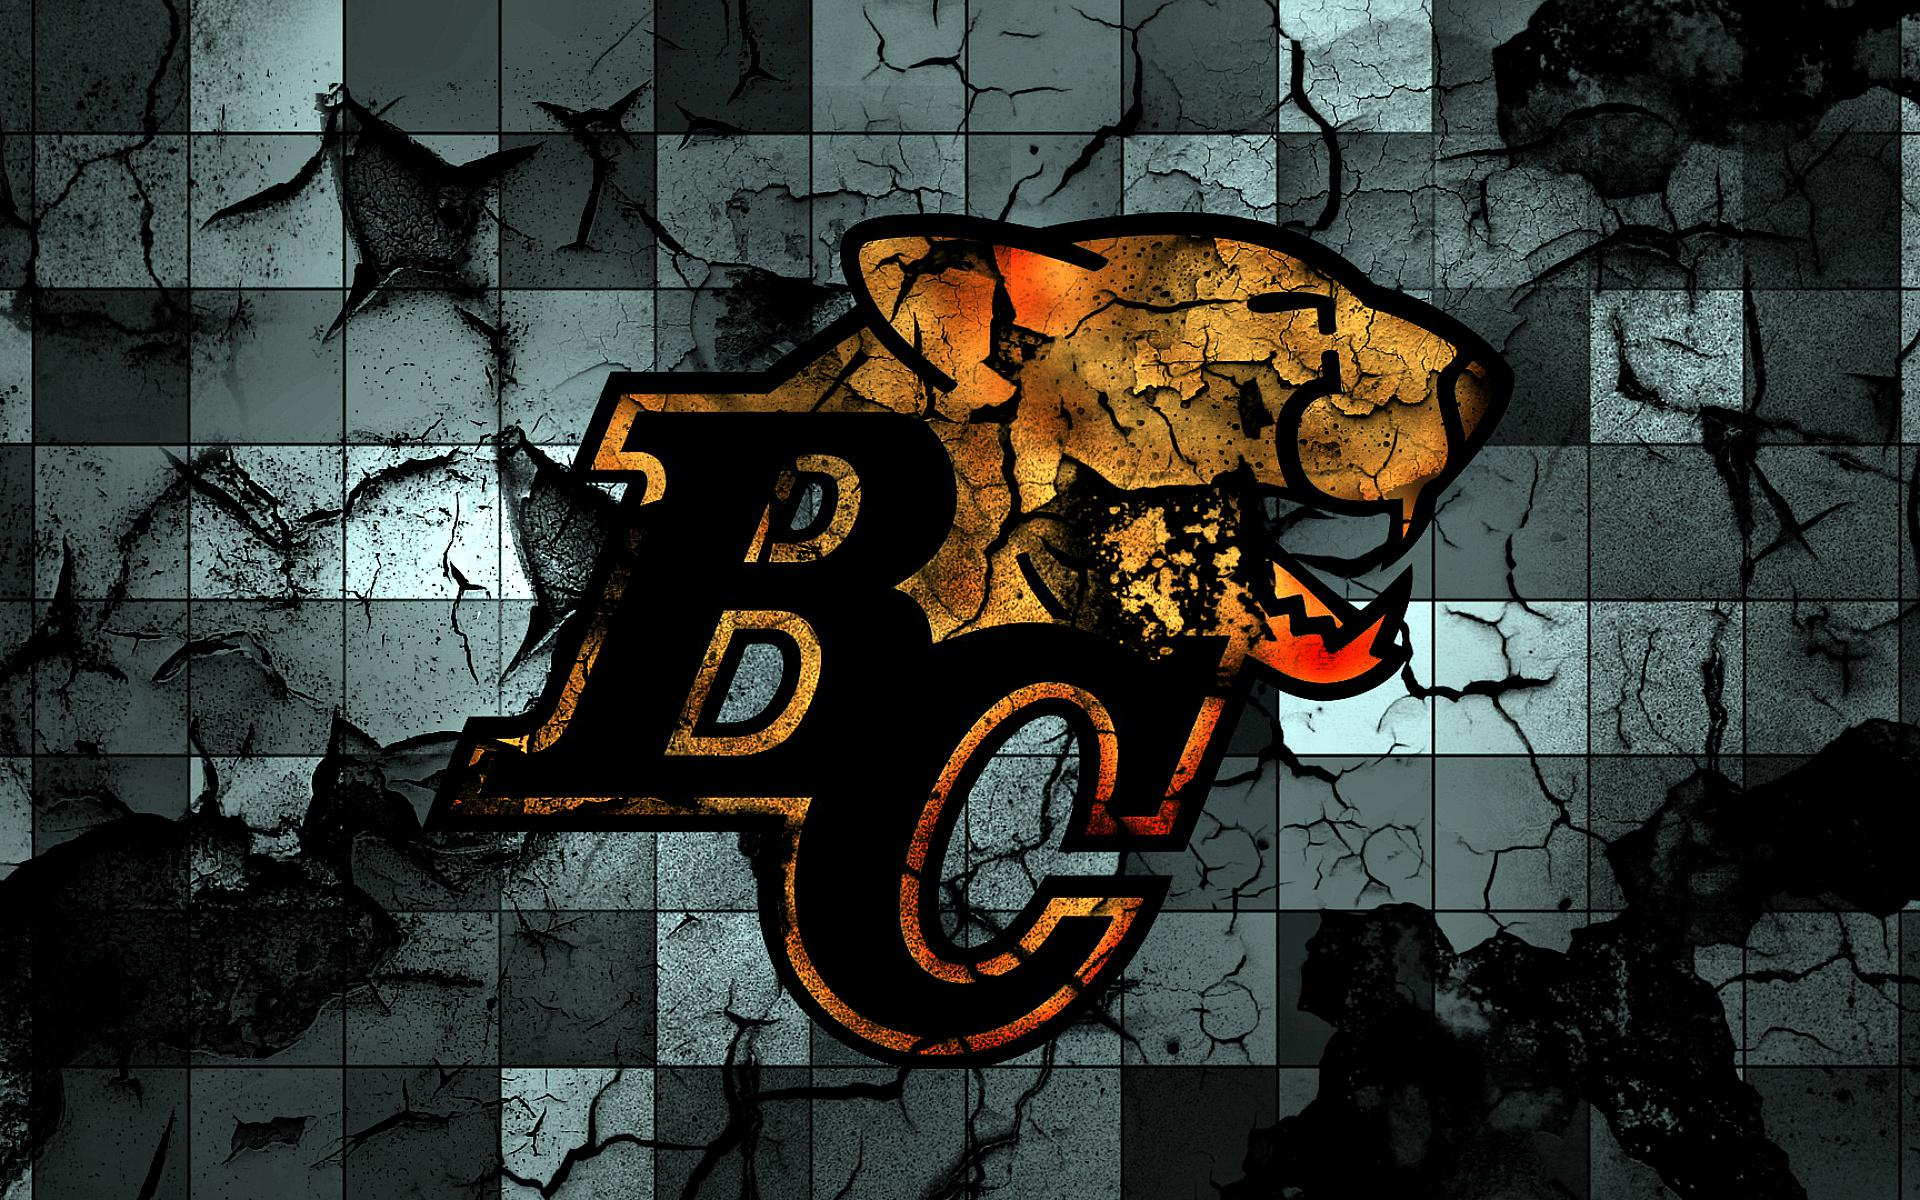 Bc lions cfl logo   104352   High Quality and Resolution Wallpapers 1920x1200